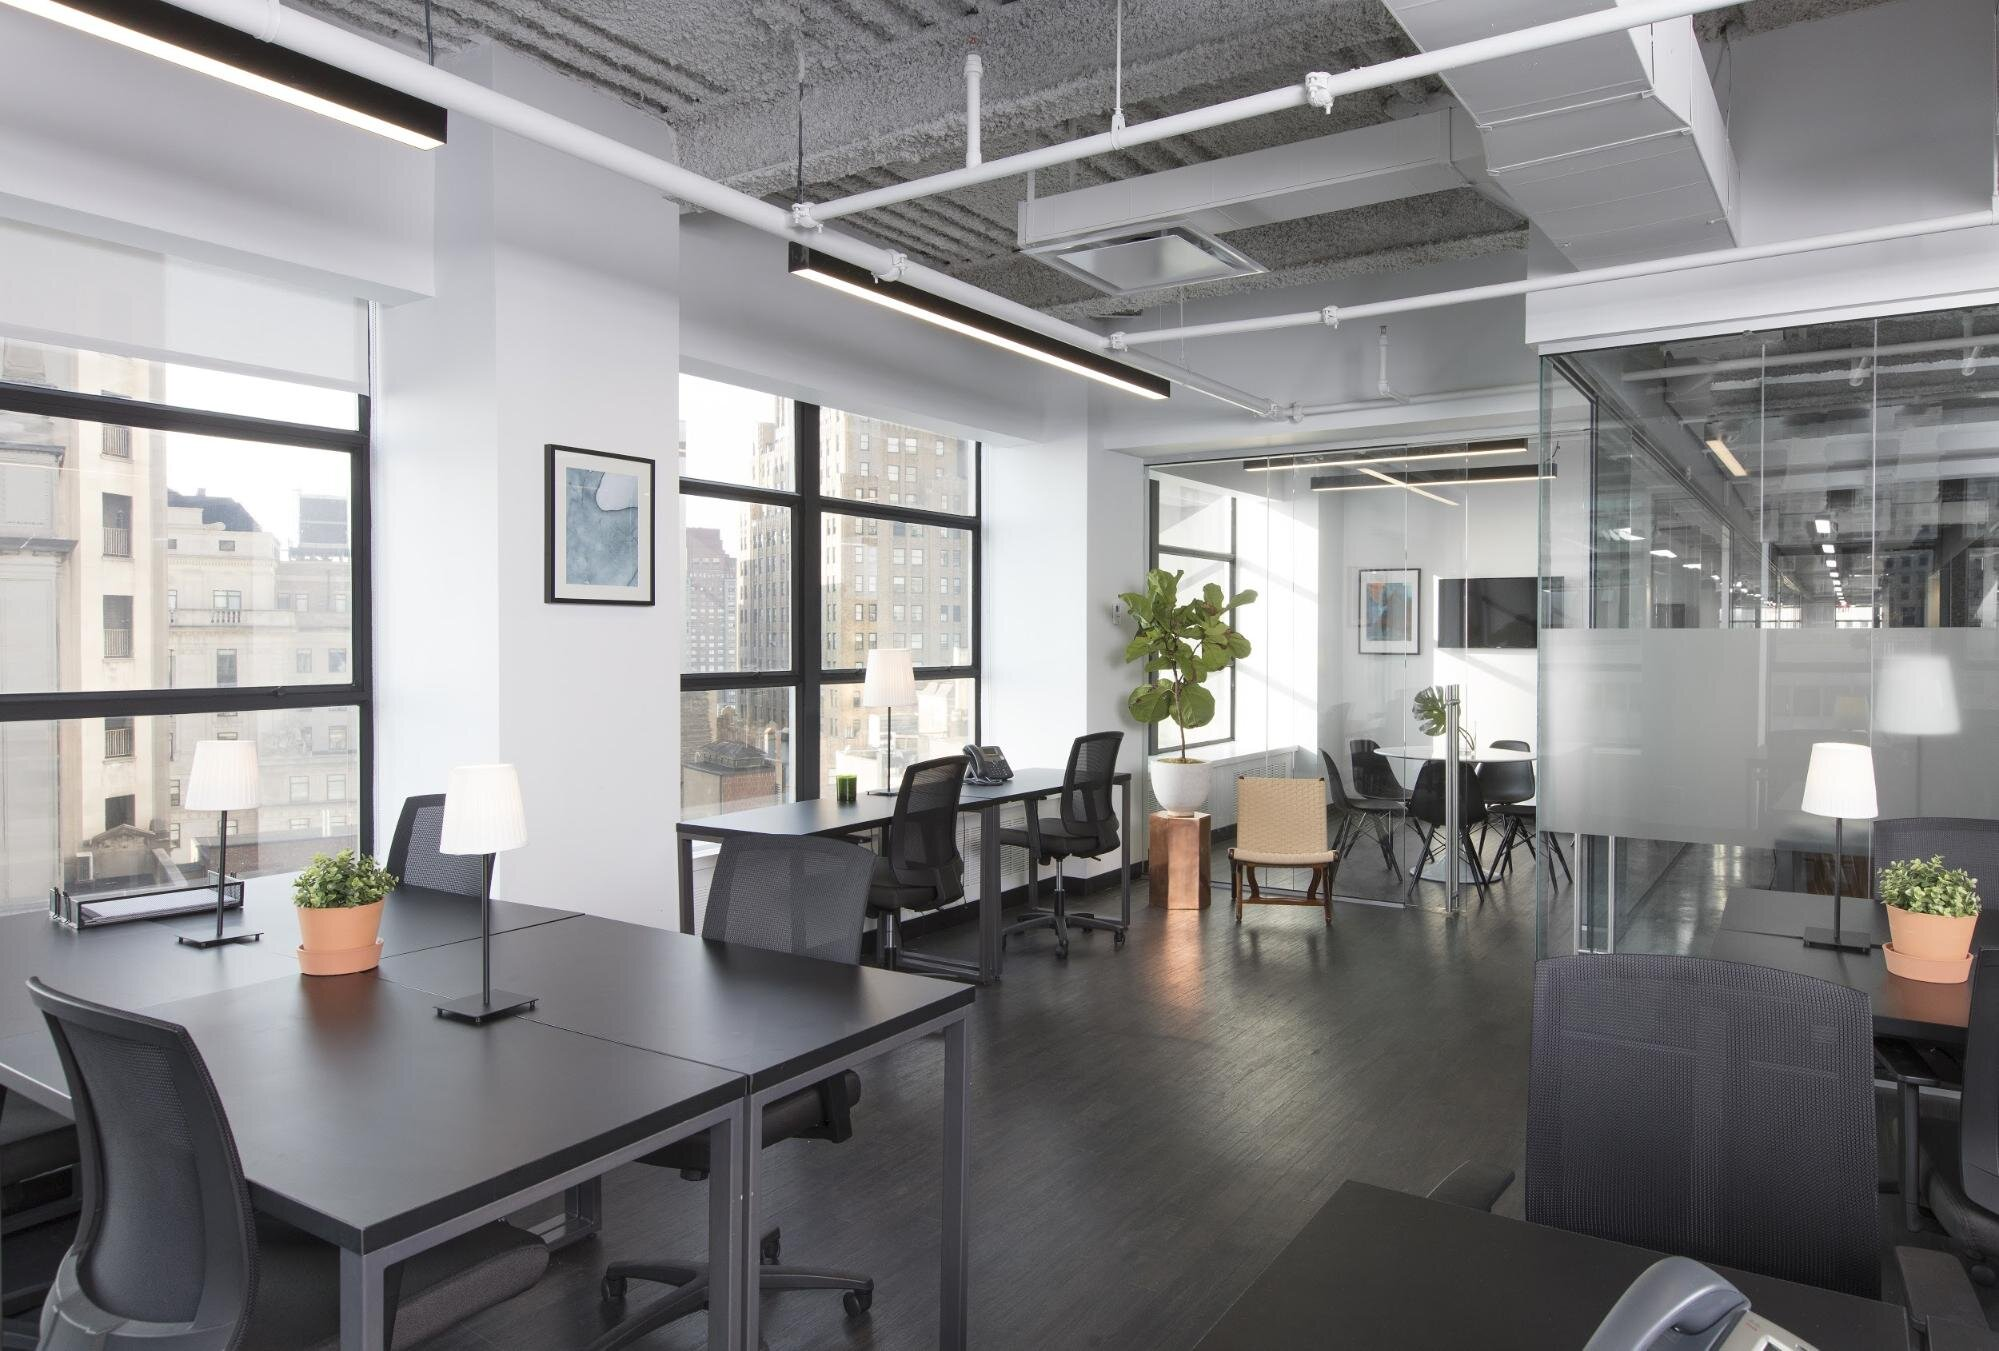 Open space office space planning with natural light and fresh plants